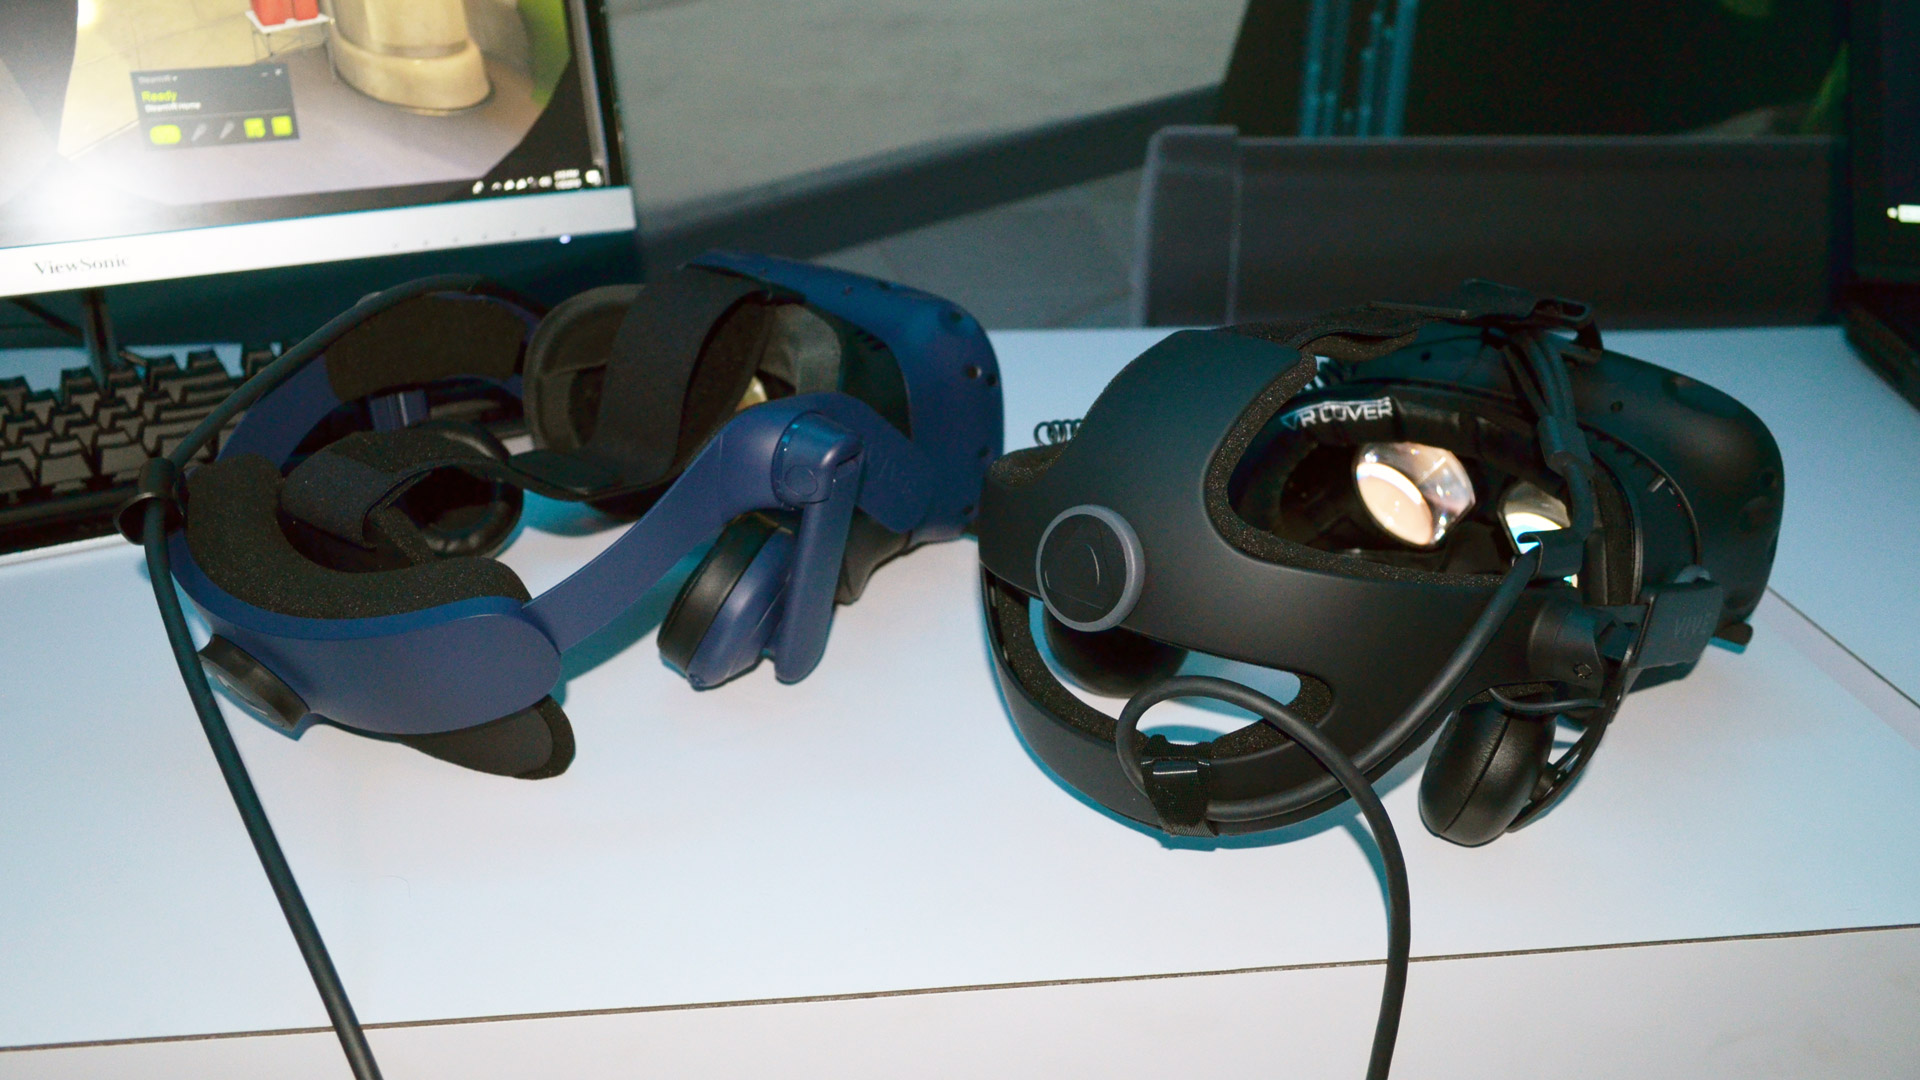 CES 2018 - Hands-on: The Vive Pro is Much More Than an